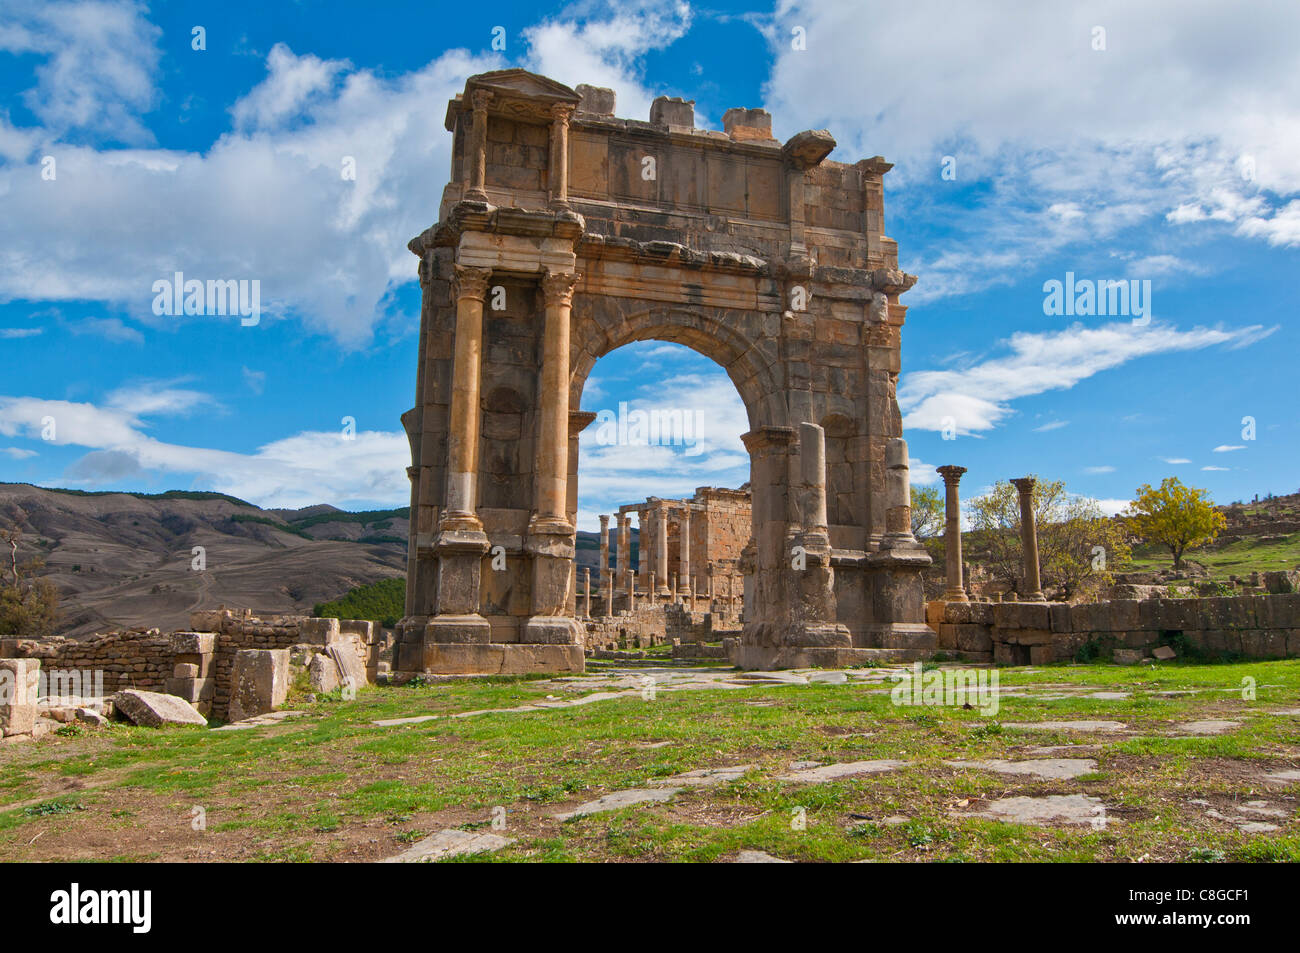 The Arch of Caracalla at the Roman ruins of Djemila, UNESCO World Heritage Site, Algeria, North Africa - Stock Image